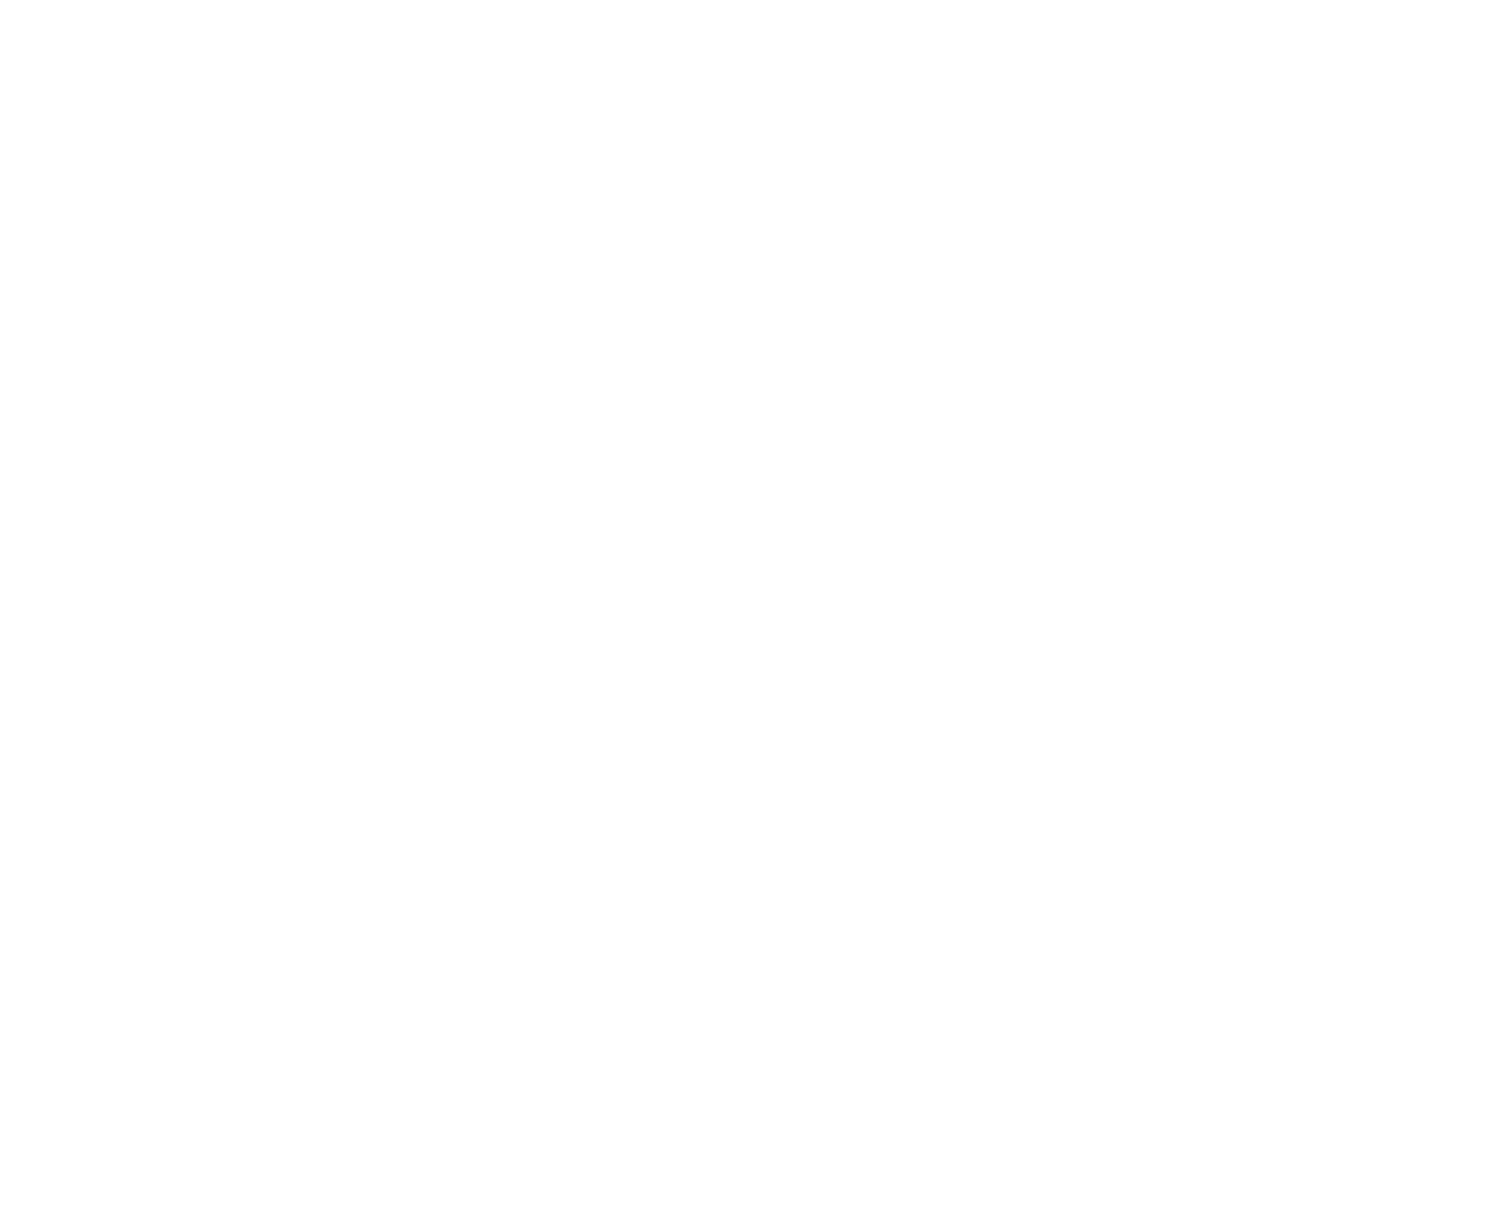 Cait Layton Photography